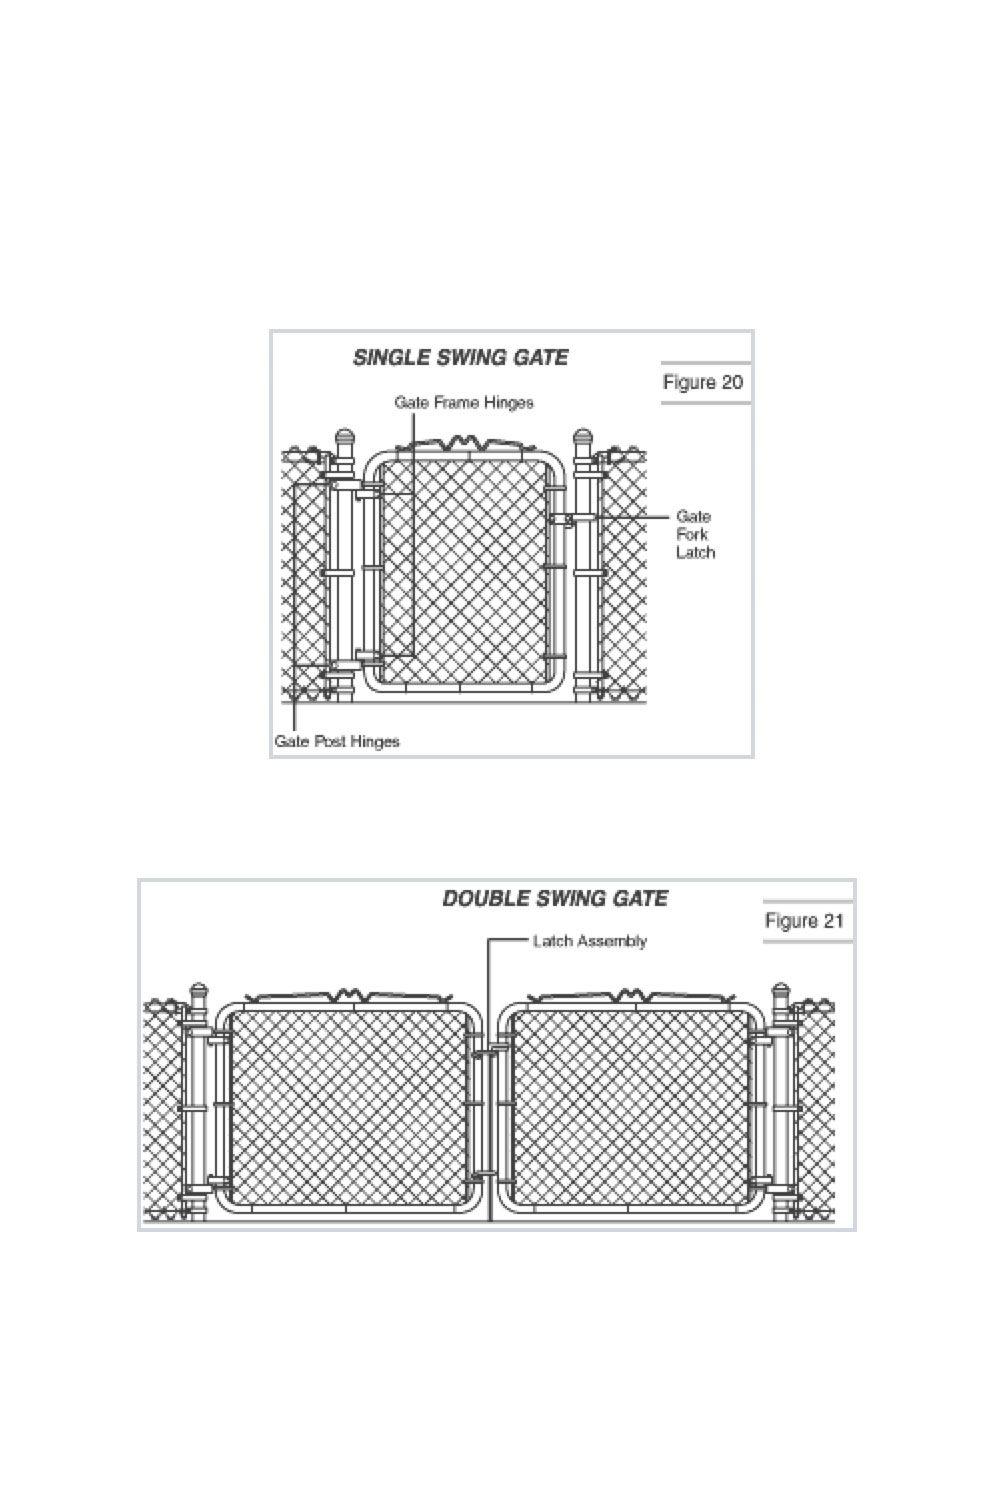 How To Install Chain Link Gate Chain Link Fence Chain Link Fence Gate Chain Link